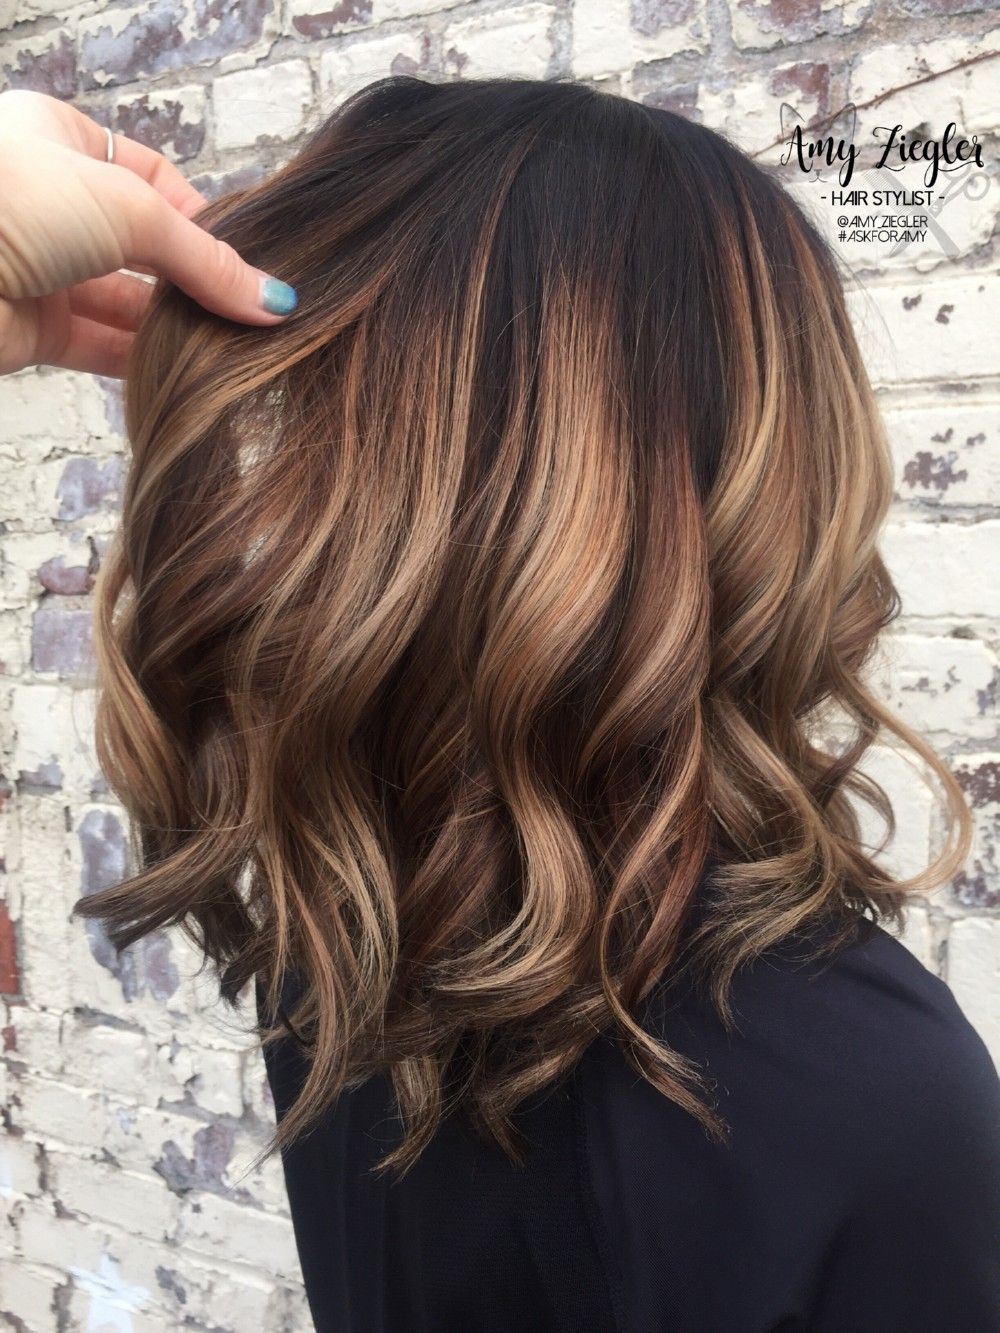 Pin by Brittany Sands on hair colors to try Pinterest Brunette